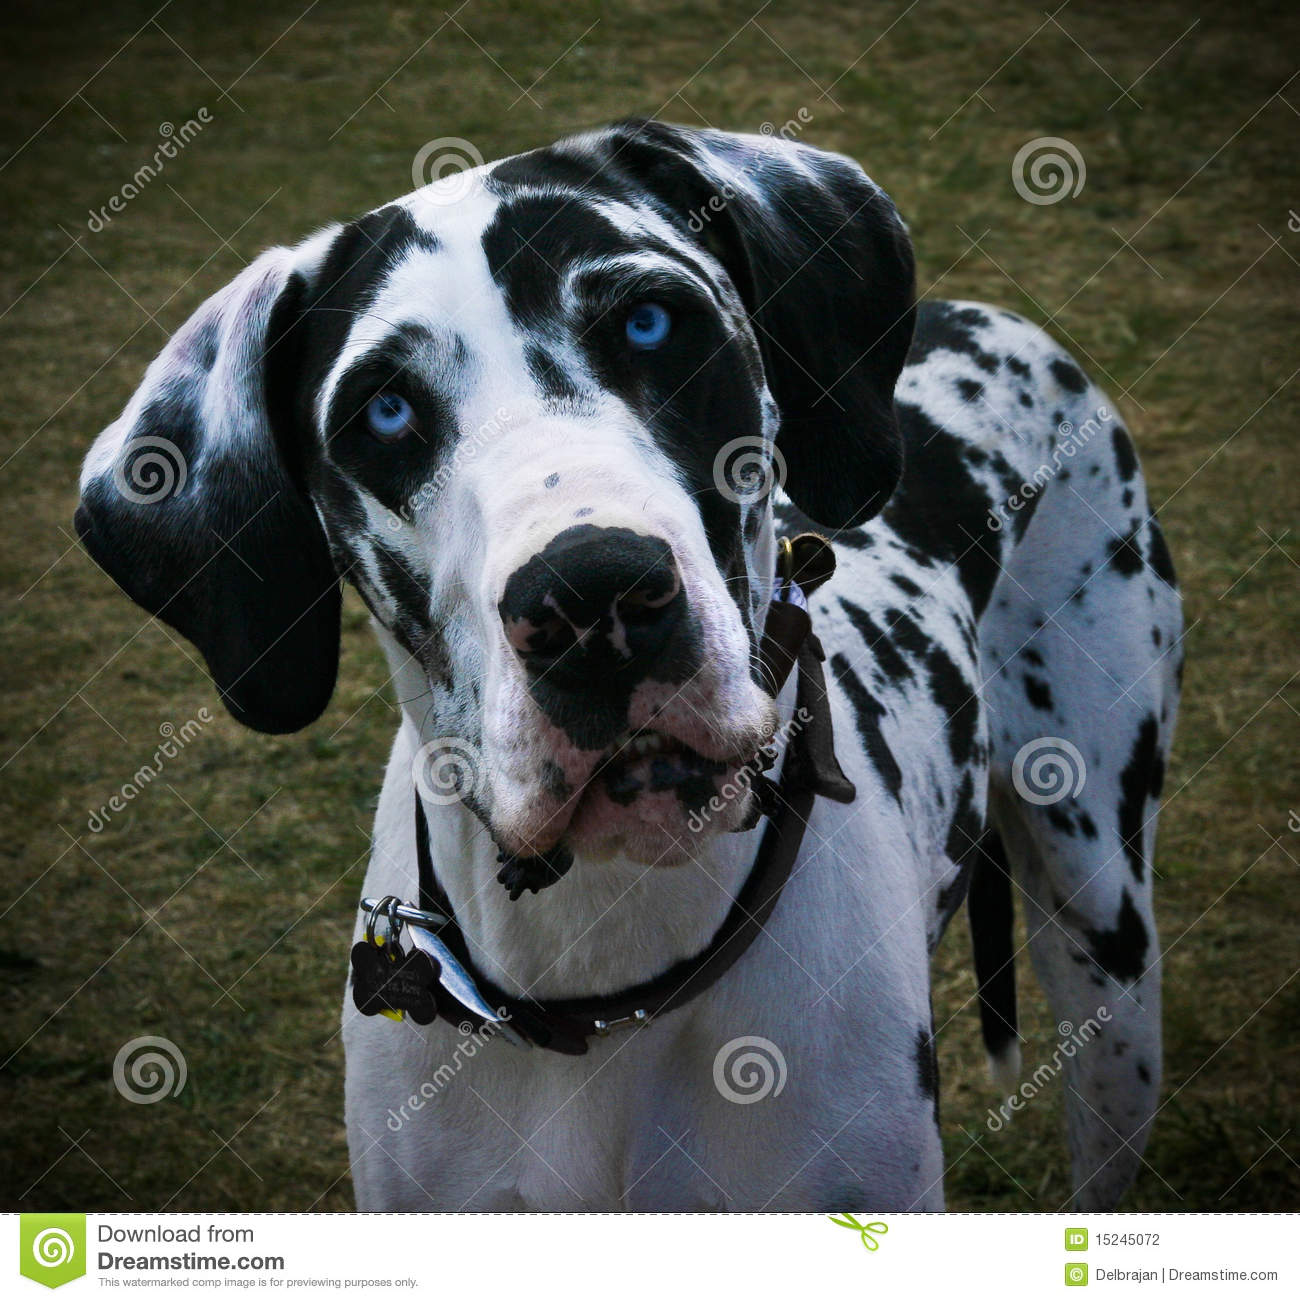 Blue Eyed Great Dane Photos Free Royalty Free Stock Photos From Dreamstime